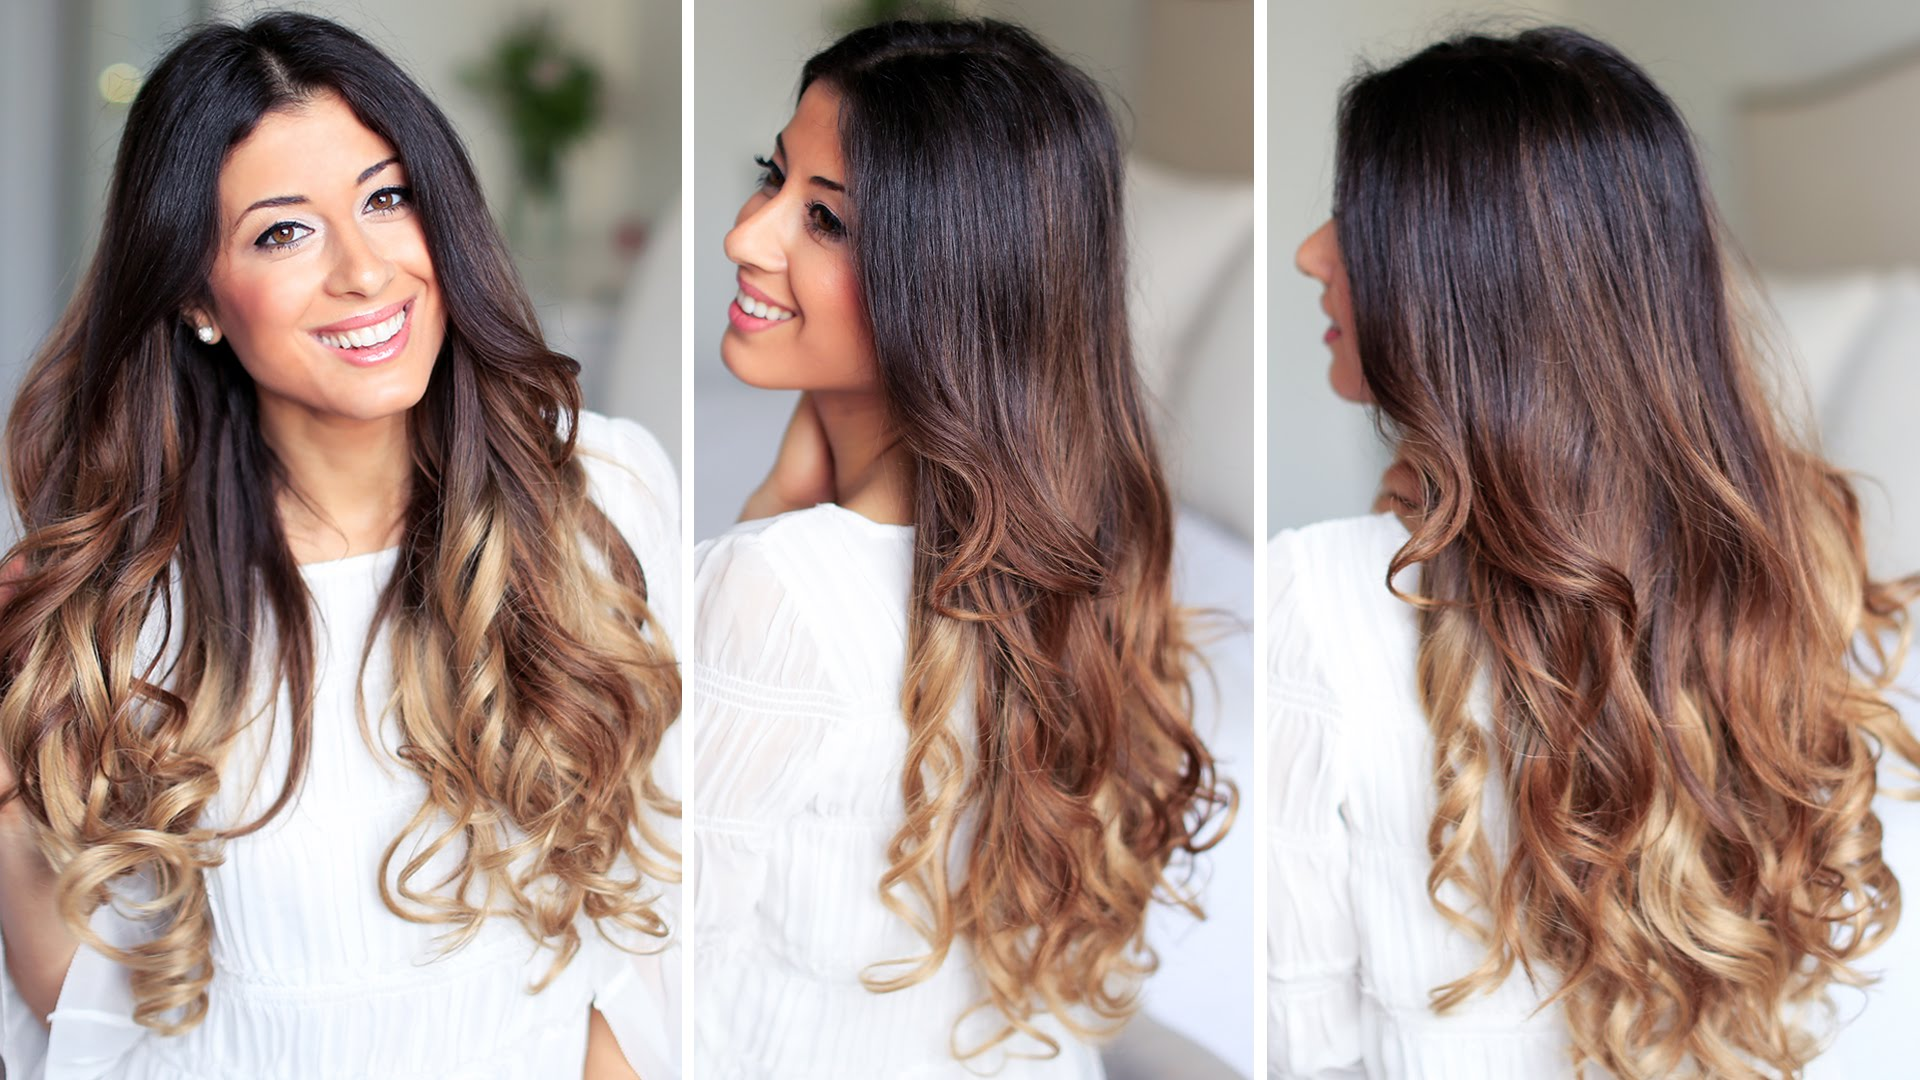 Top Ten Hairstyle Options for Ladies with Long Curly Hair